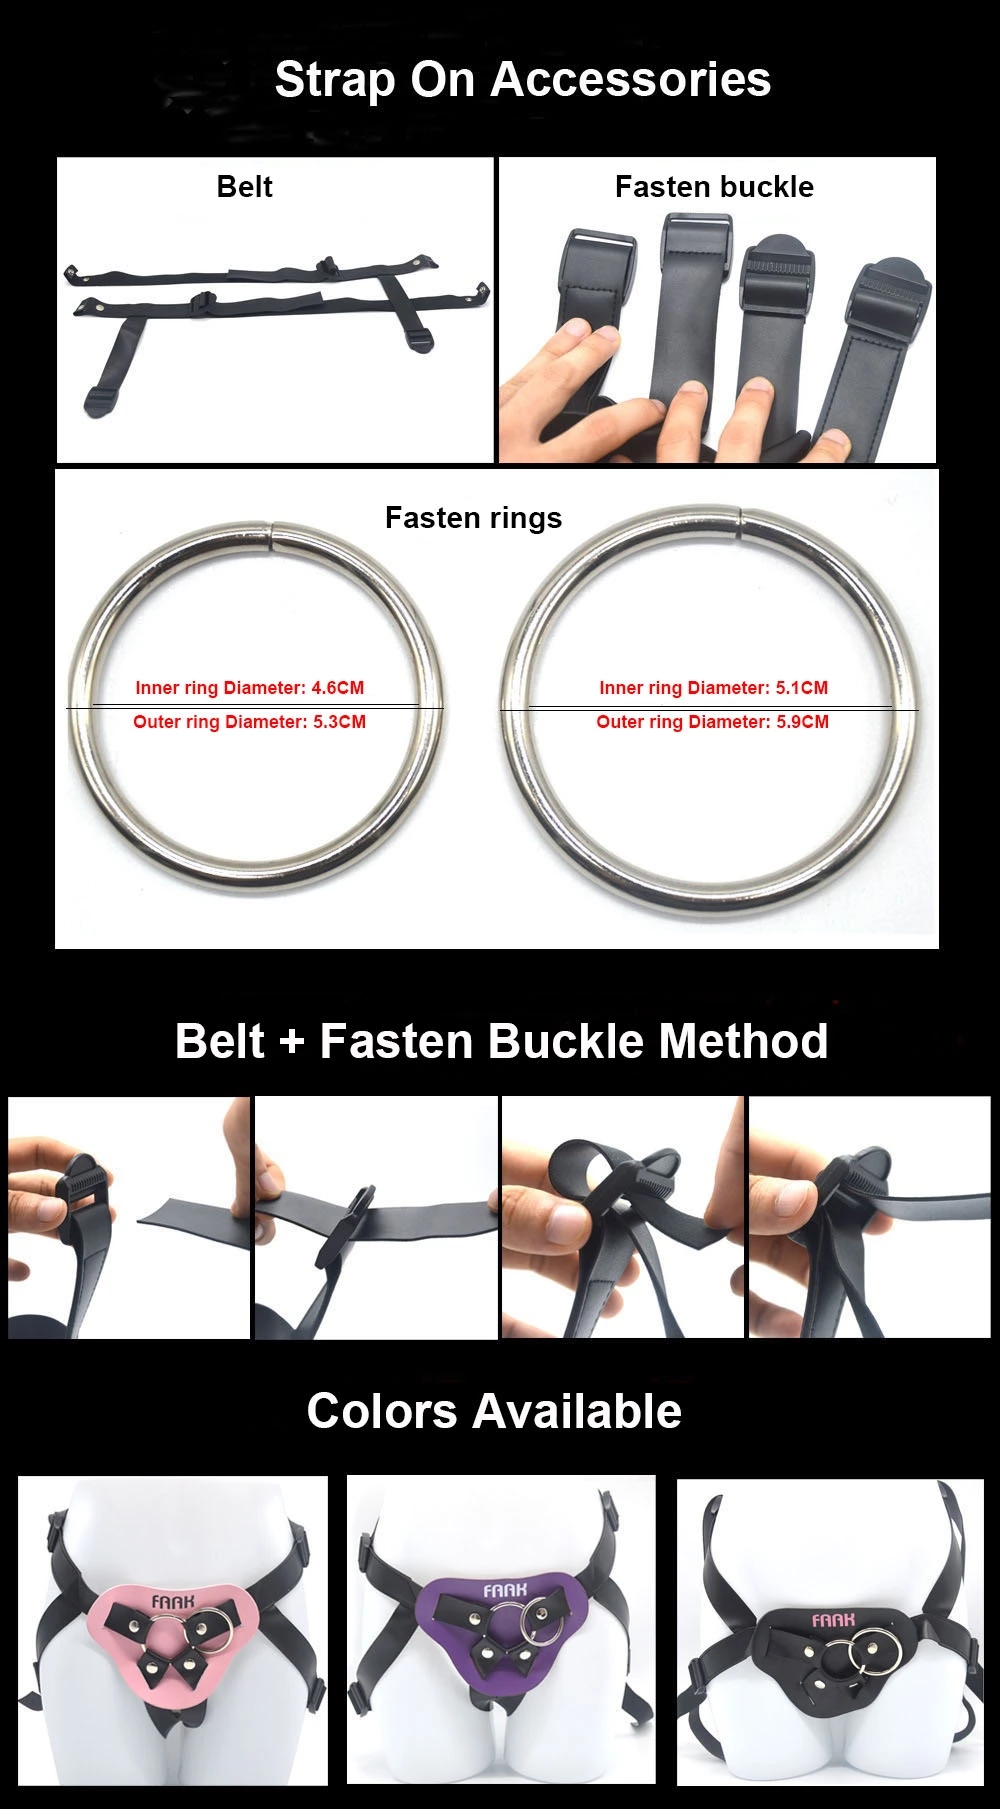 FAAK wholesale gay lesbian adjustable harness with 24cm realistic silicone dildo soft straps O-ring strapon dildo for men